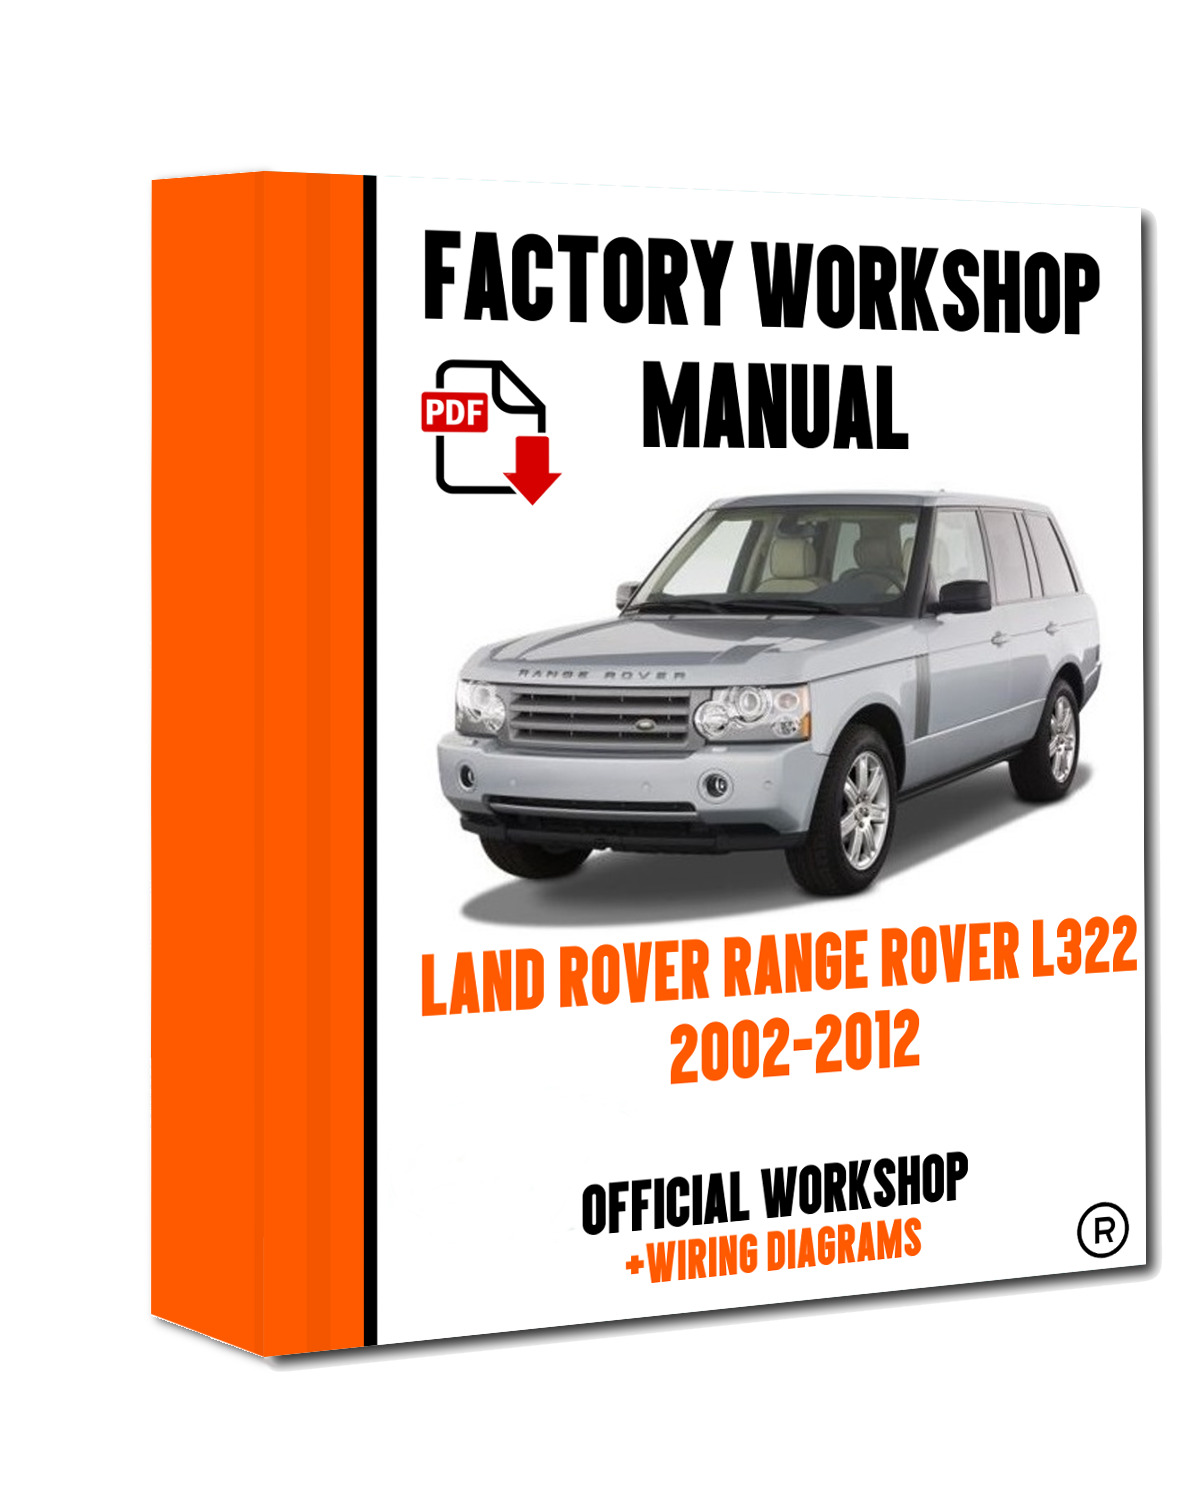 OFFICIAL WORKSHOP Manual Service Repair Land Rover Range Rover L322  2002-2012 1 di 1Spedizione gratuita ...